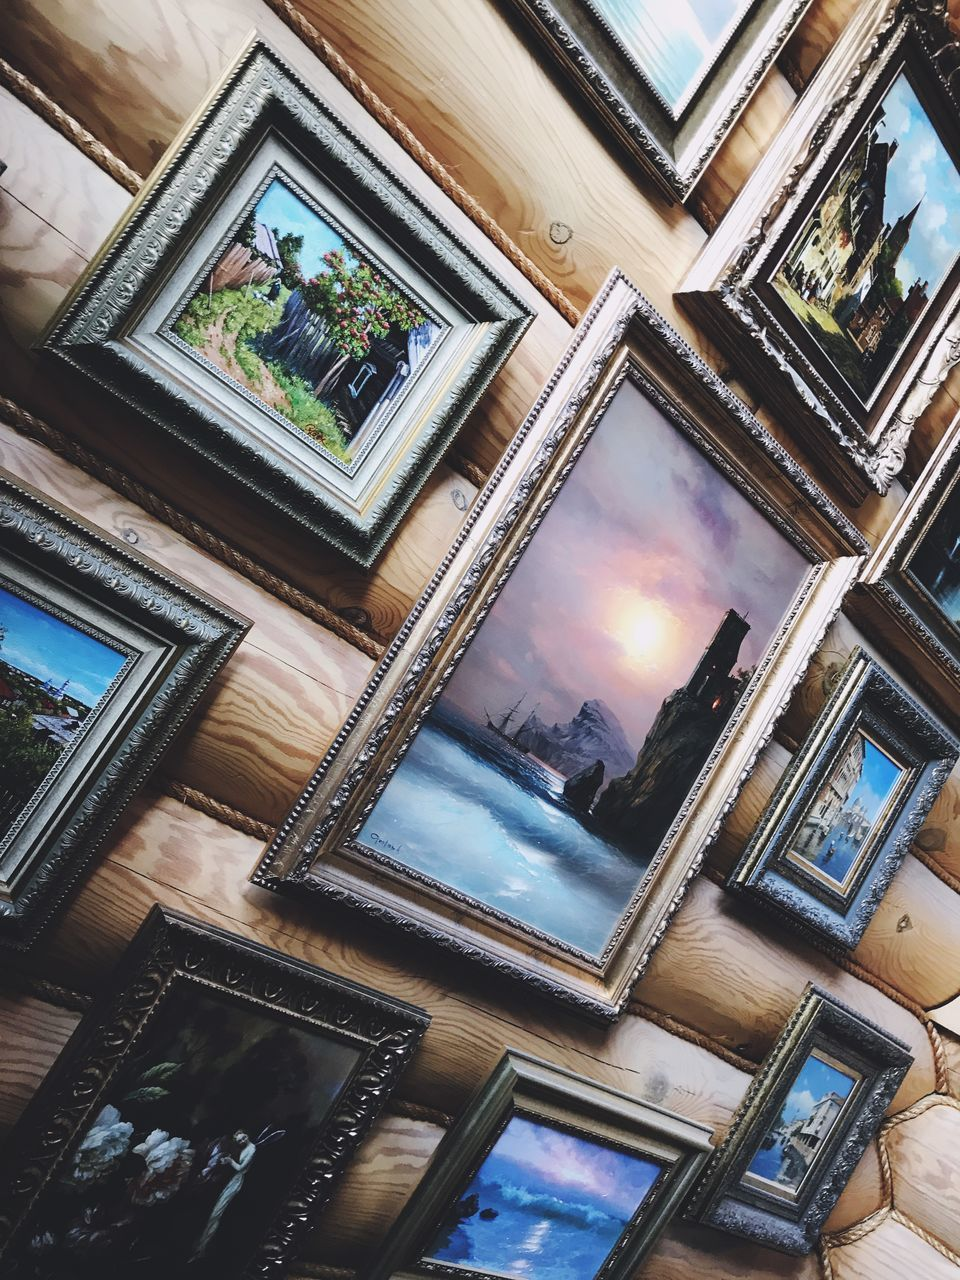 indoors, no people, picture frame, reflection, frame, window, high angle view, photography themes, glass - material, nature, technology, wood - material, communication, group, built structure, architecture, table, day